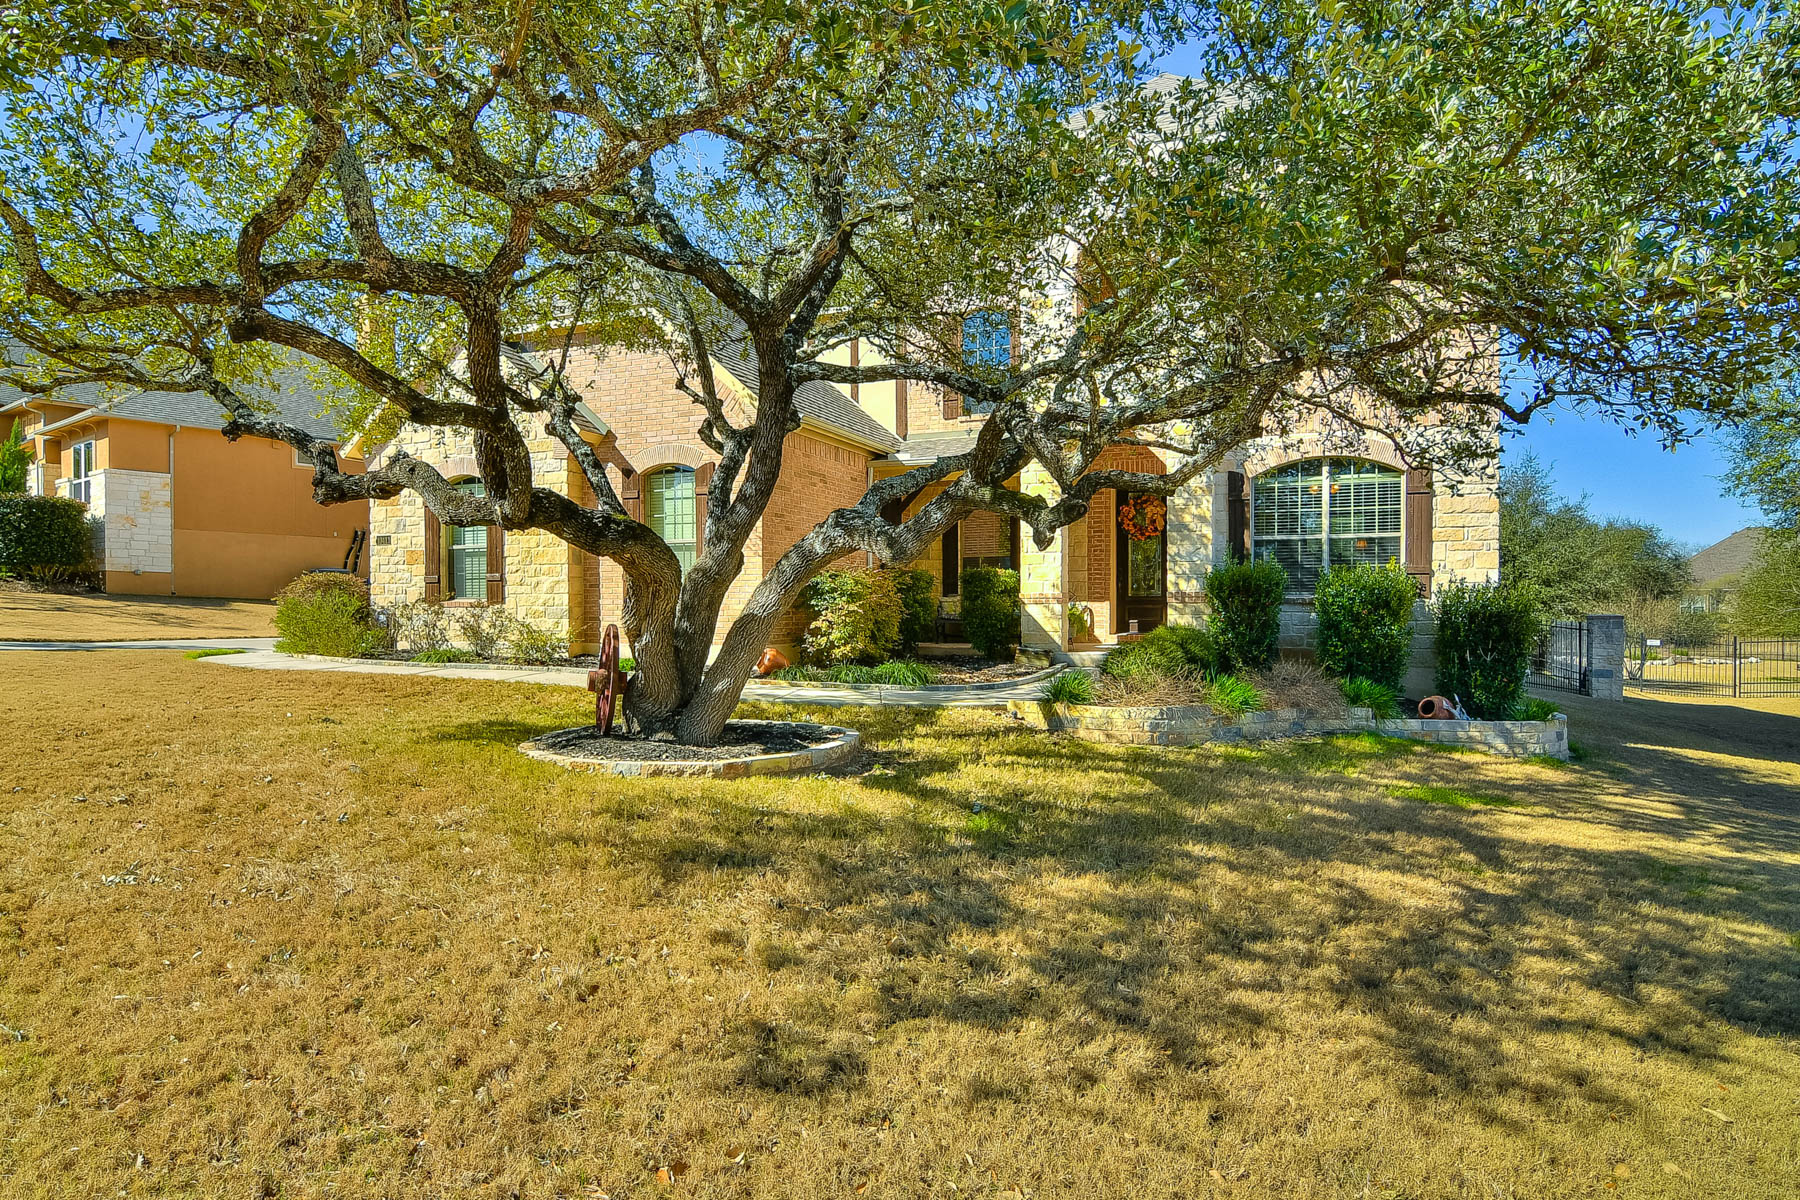 Single Family Home for Sale at Well Appointed Home in Boerne 10411 Star Mica Boerne, Texas 78006 United States